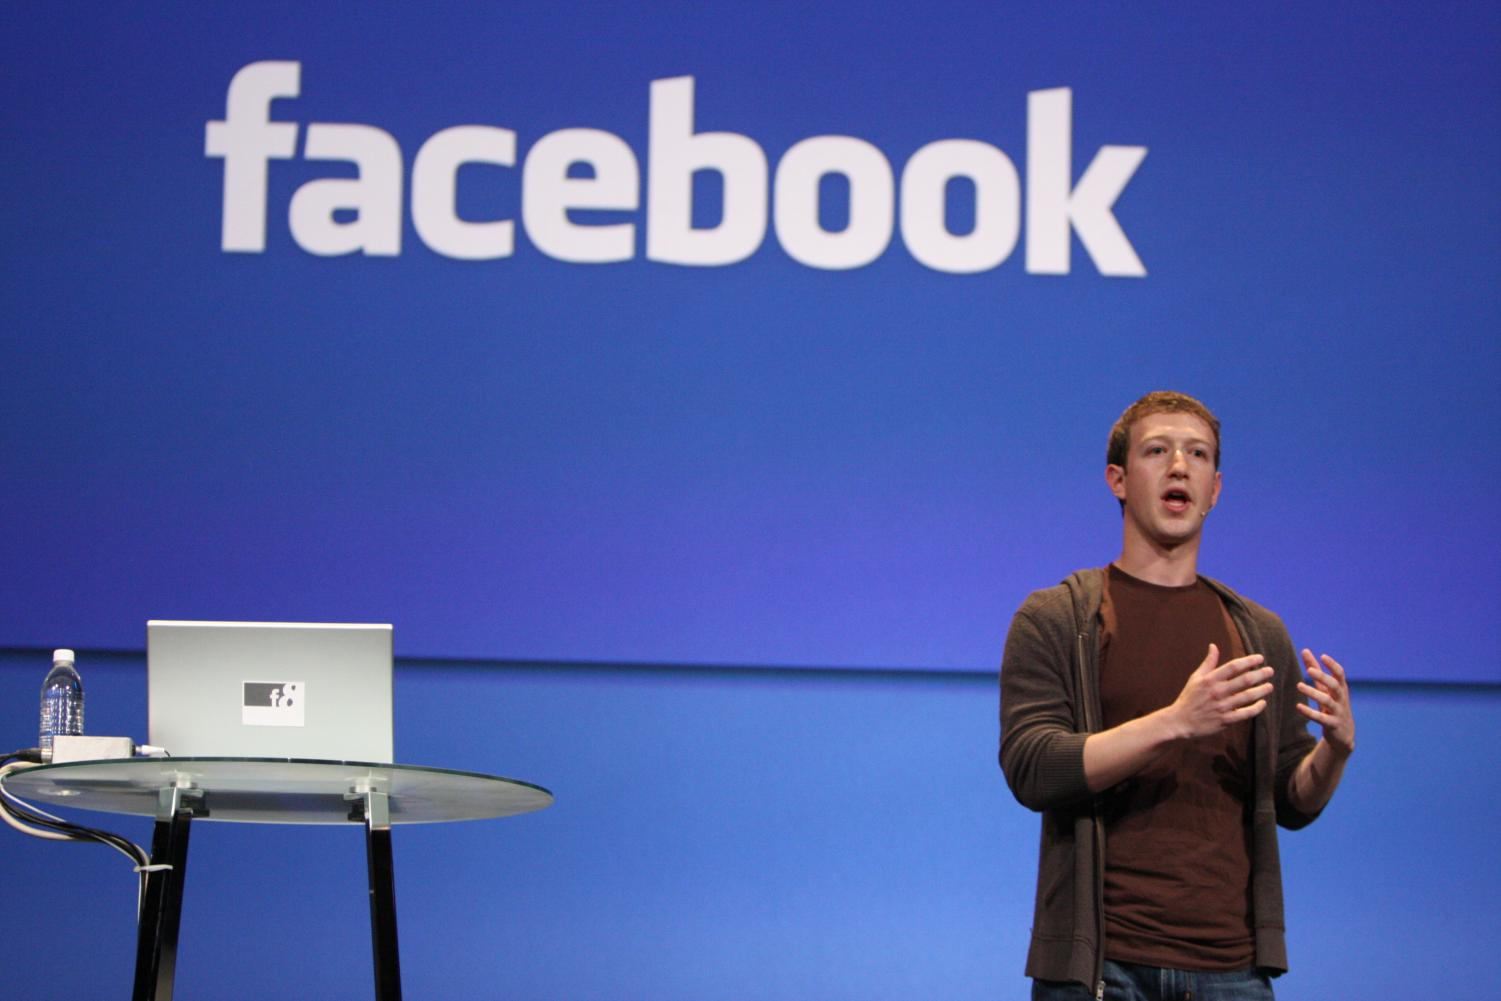 Mark Zuckerberg is the founder and current CEO of Facebook.